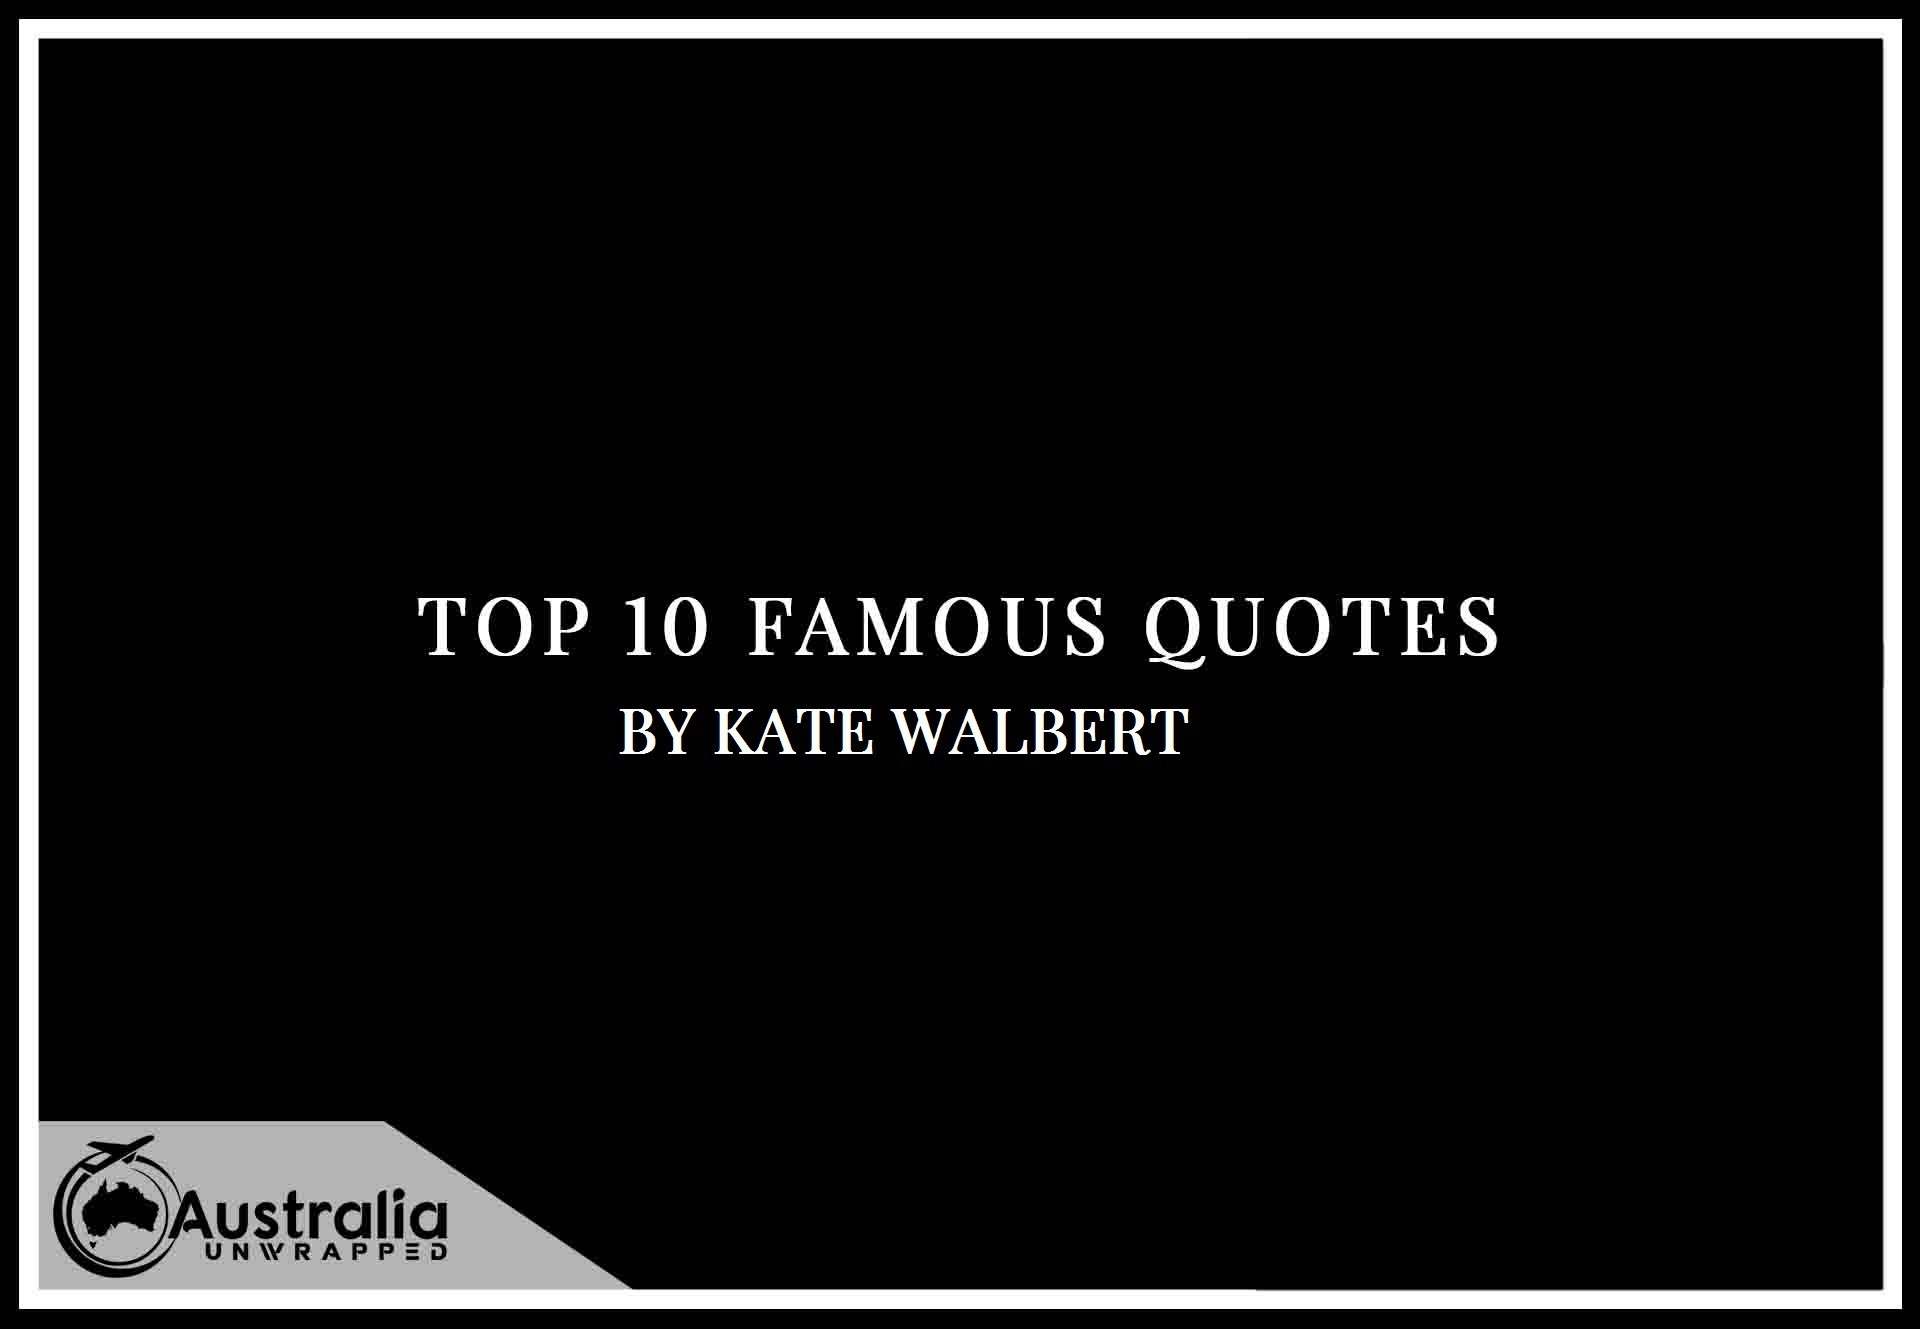 Kate Walbert's Top 10 Popular and Famous Quotes